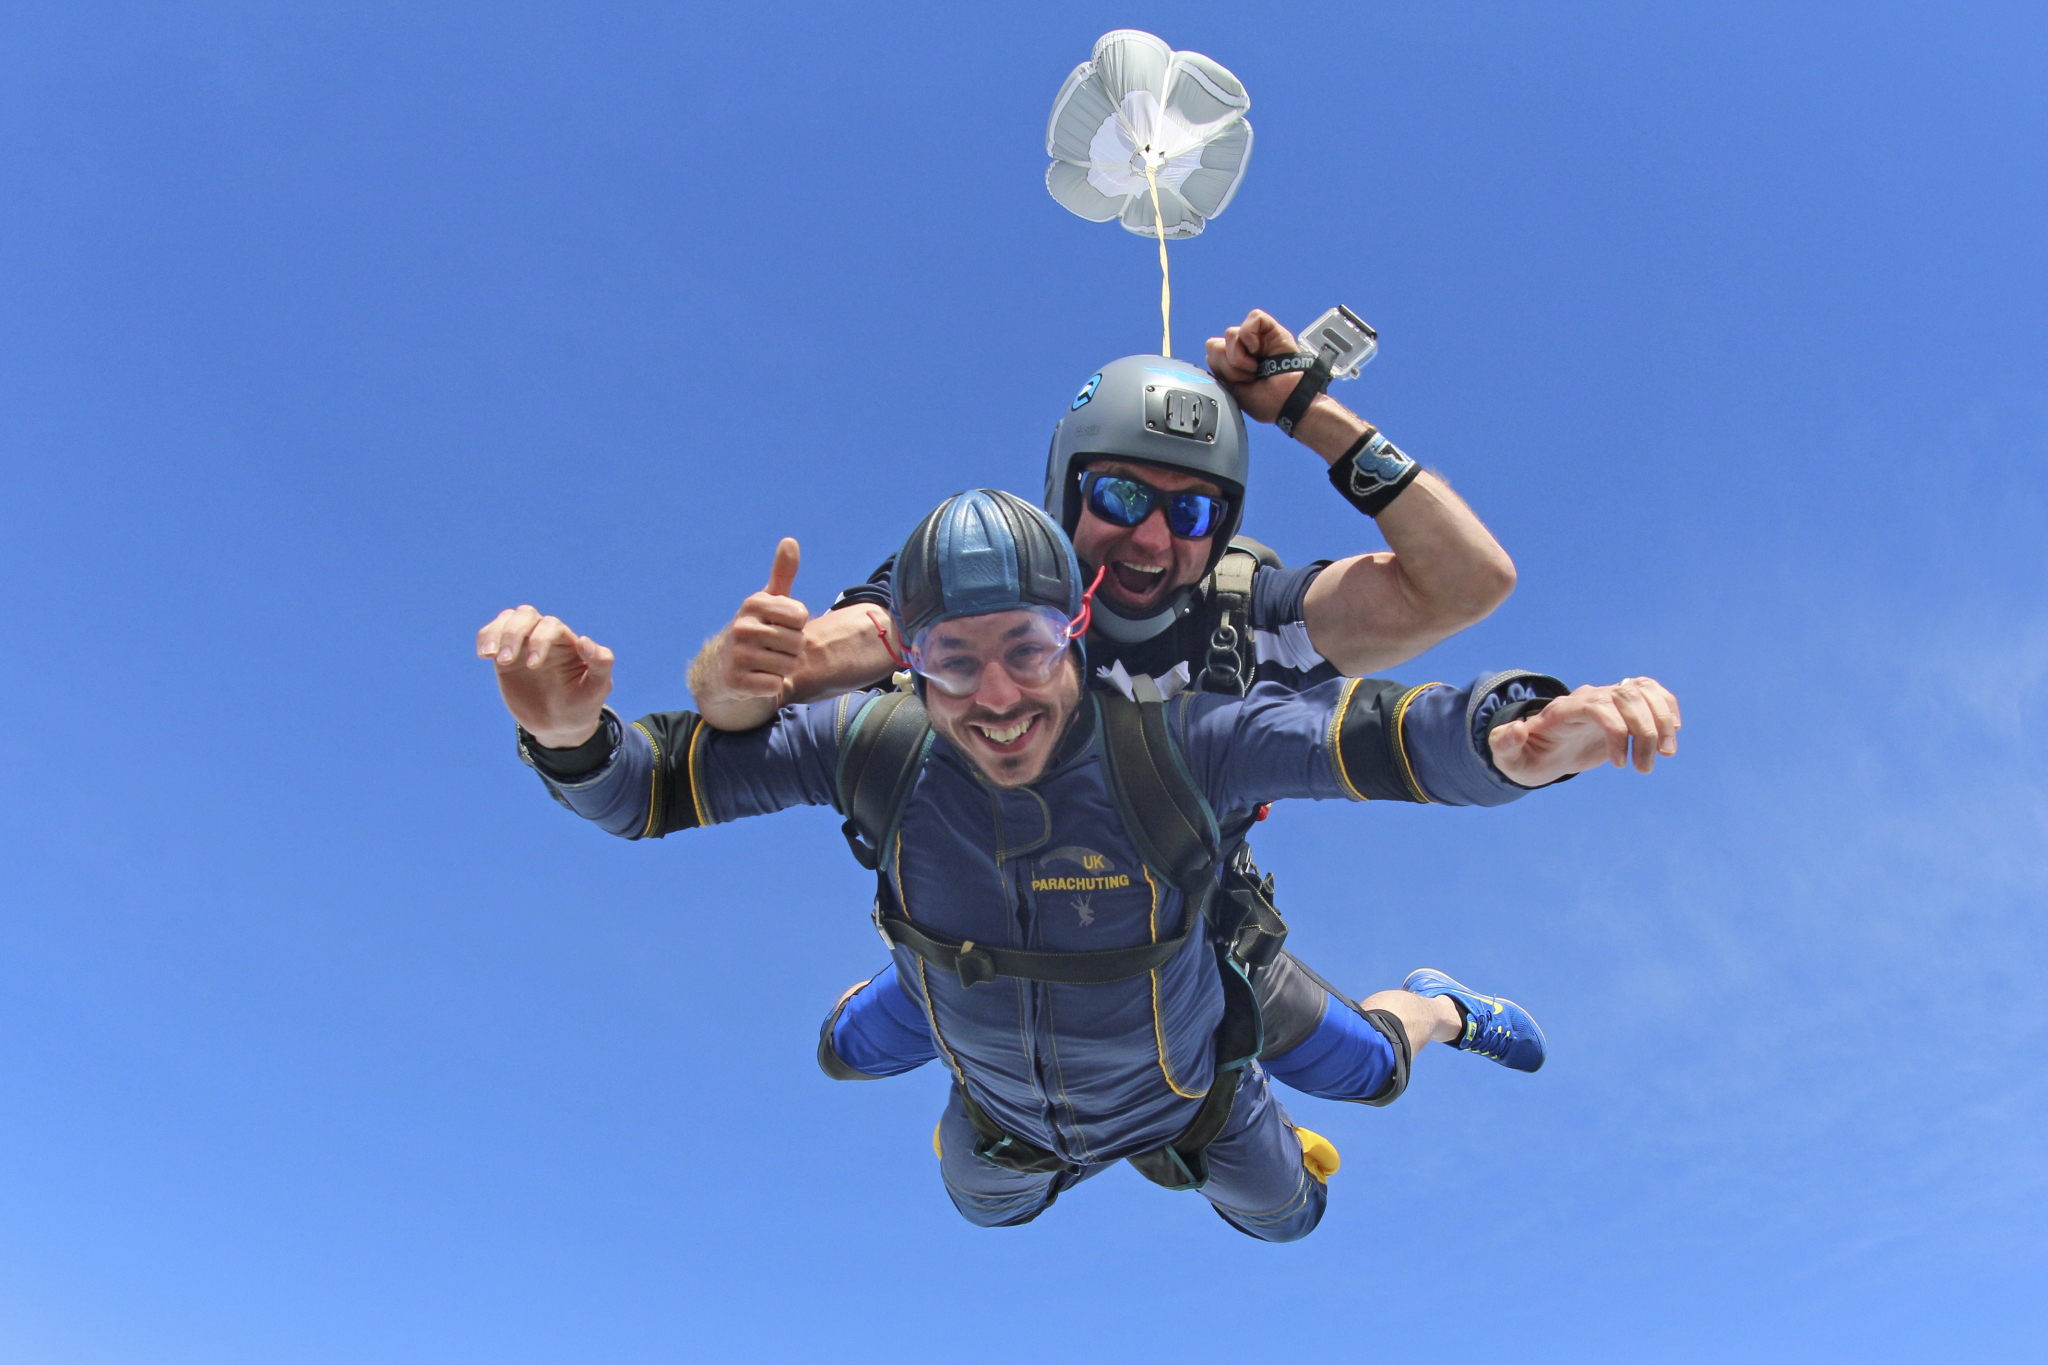 Sky Diving for Charity